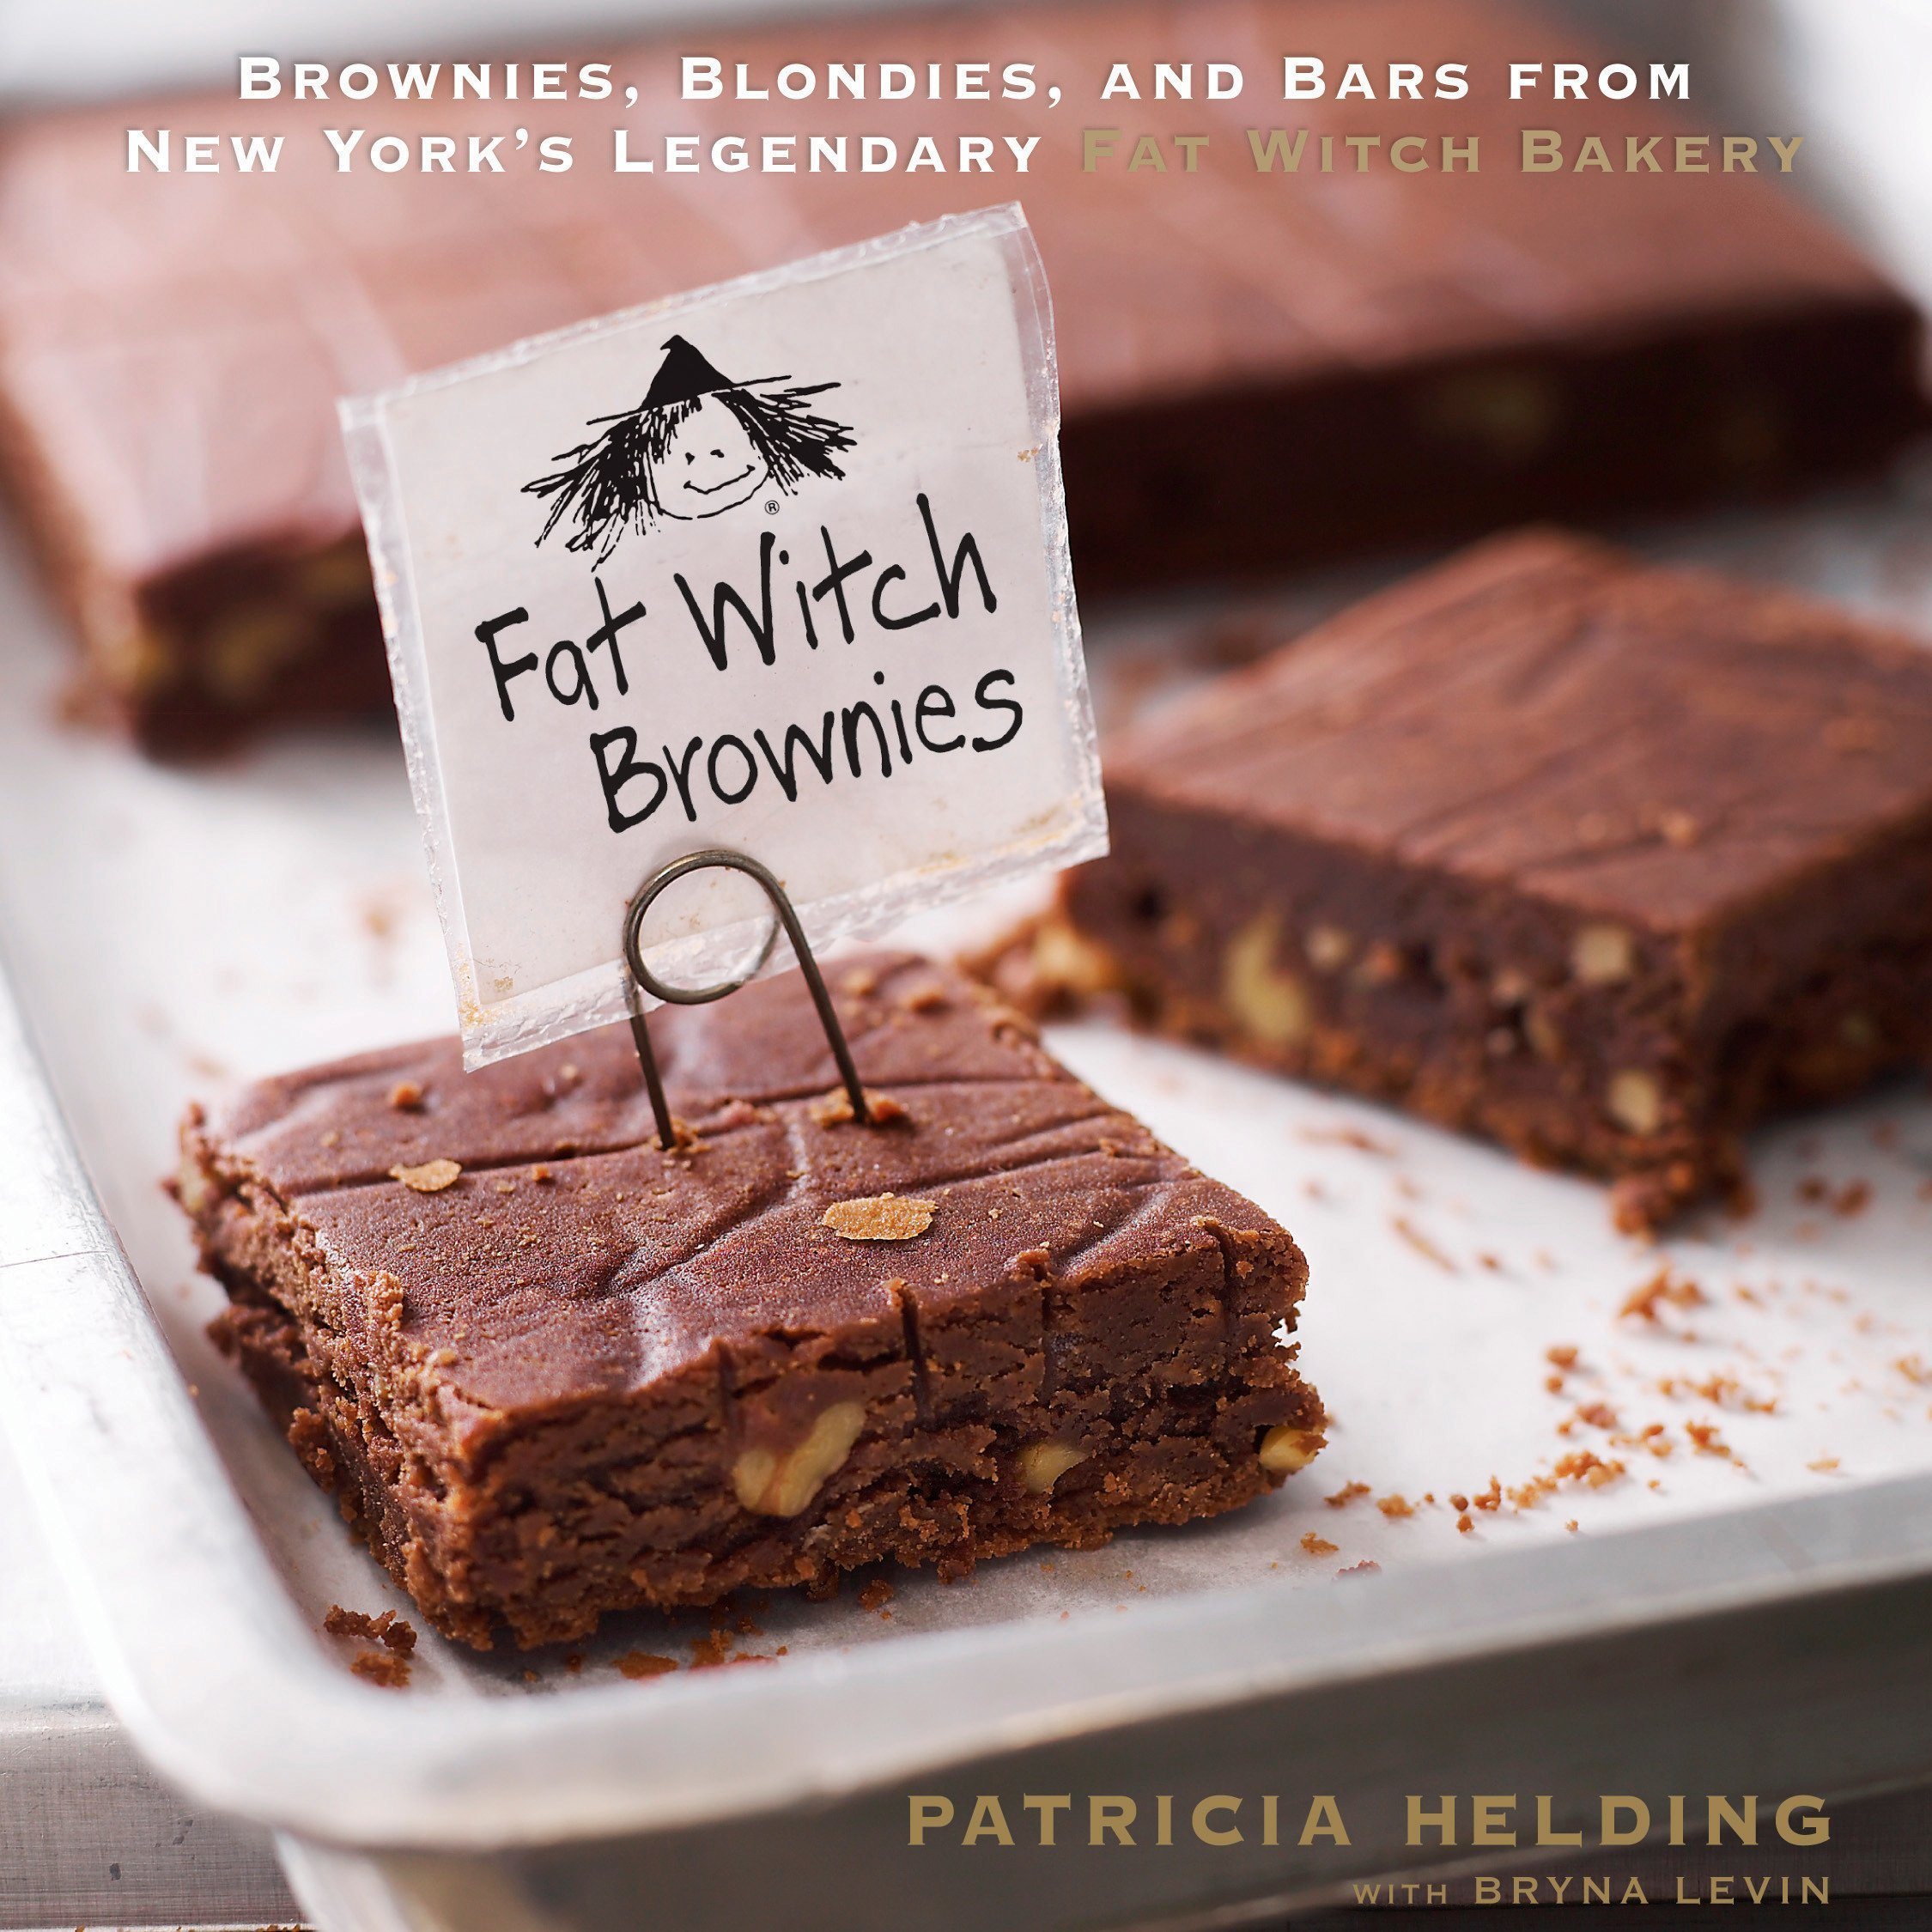 Fat Witch Brownies: Brownies, Blondies, and Bars from New York's Legendary Fat Witch Bakery (Fat Witch Baking Cookbooks) by Rodale Press